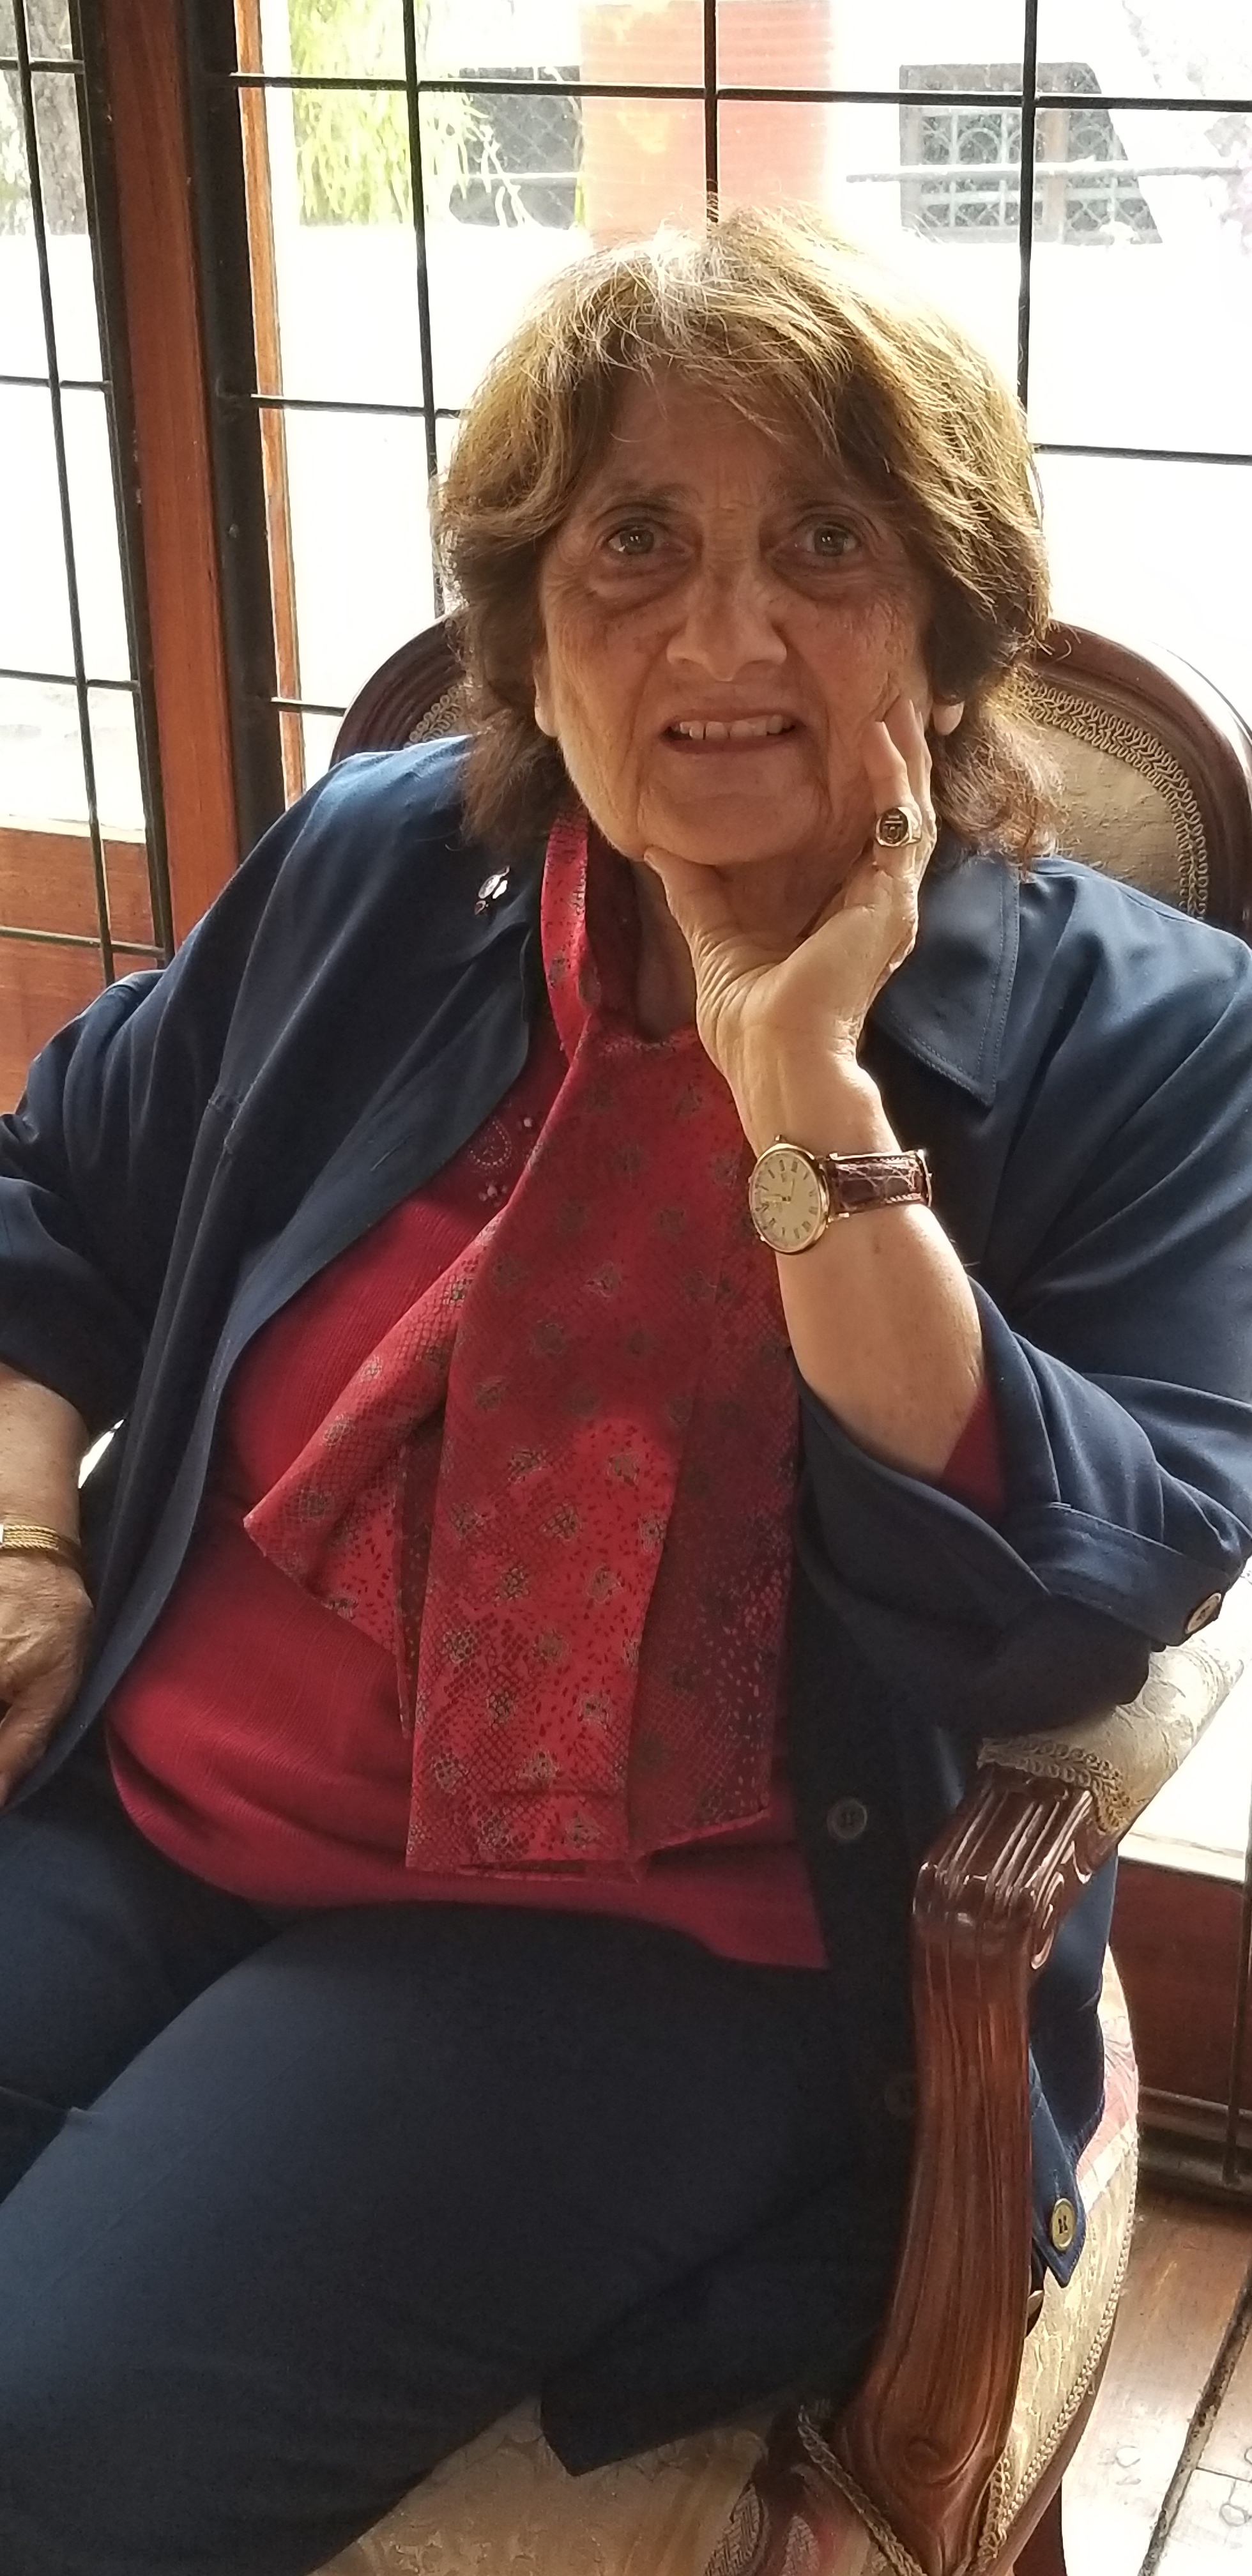 Caption: Dr. Marie-Lise Gazarian was awarded a lifetime achievement award from the Ecuadorian government for her work as an educator. Photo courtesy of St. John's.